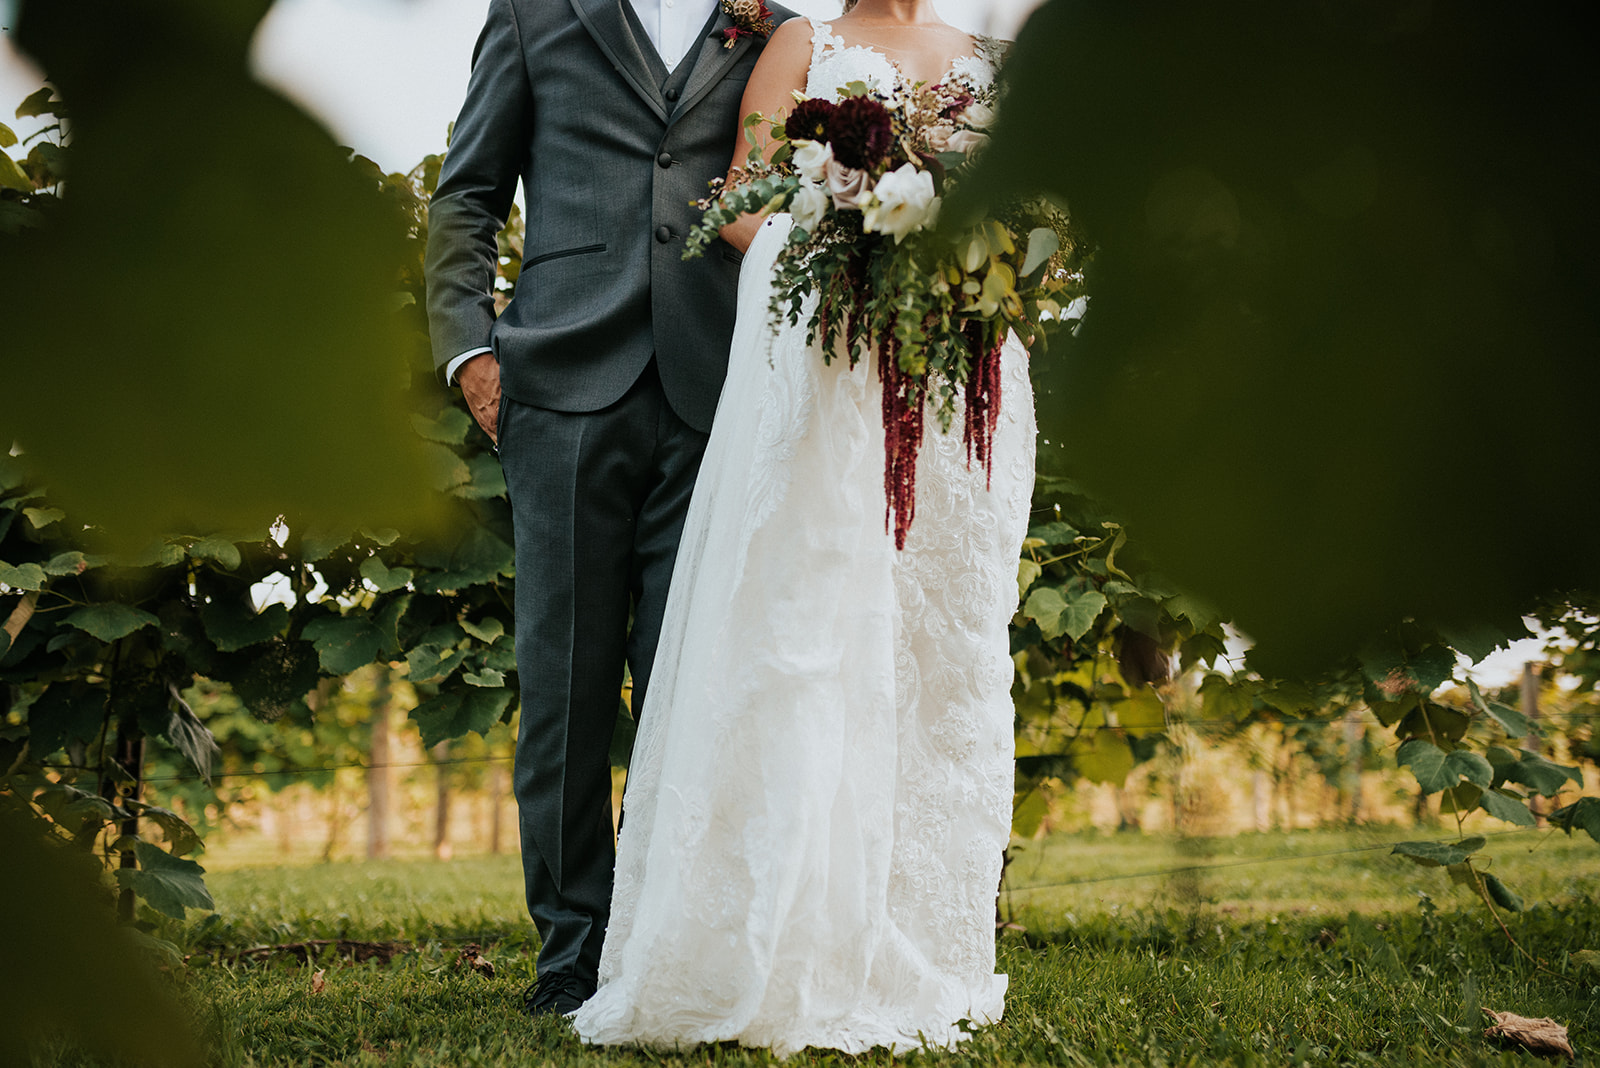 overthevineswisconsinwedding_0927.jpg